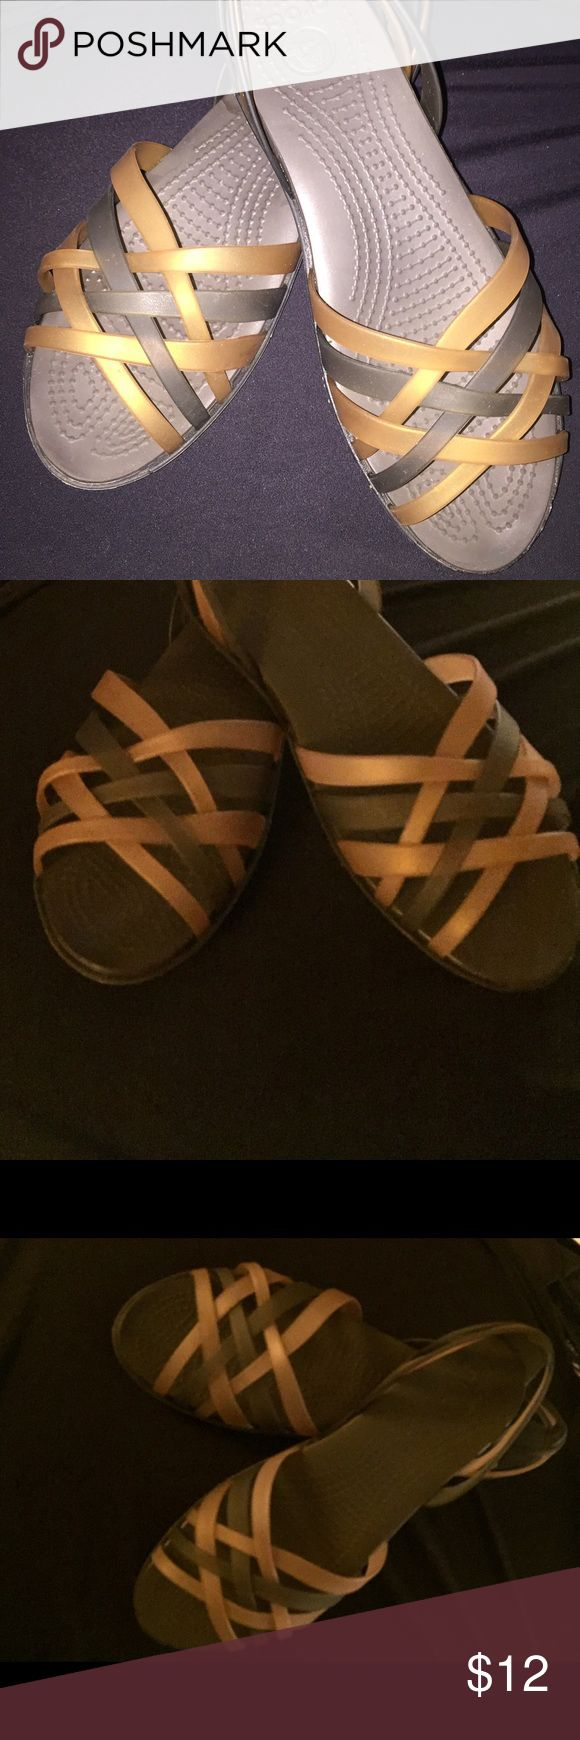 Crocs Women's Huarache Flat - Bronze/Espresso Adorable, light and easy to wash. Flexible yet stable- crocslite sole - extremely supportive of arch. Worn only a few times - front left shoe has residue from glue that I don't have time to remove - otherwise excellent condition. CROCS Shoes Sandals